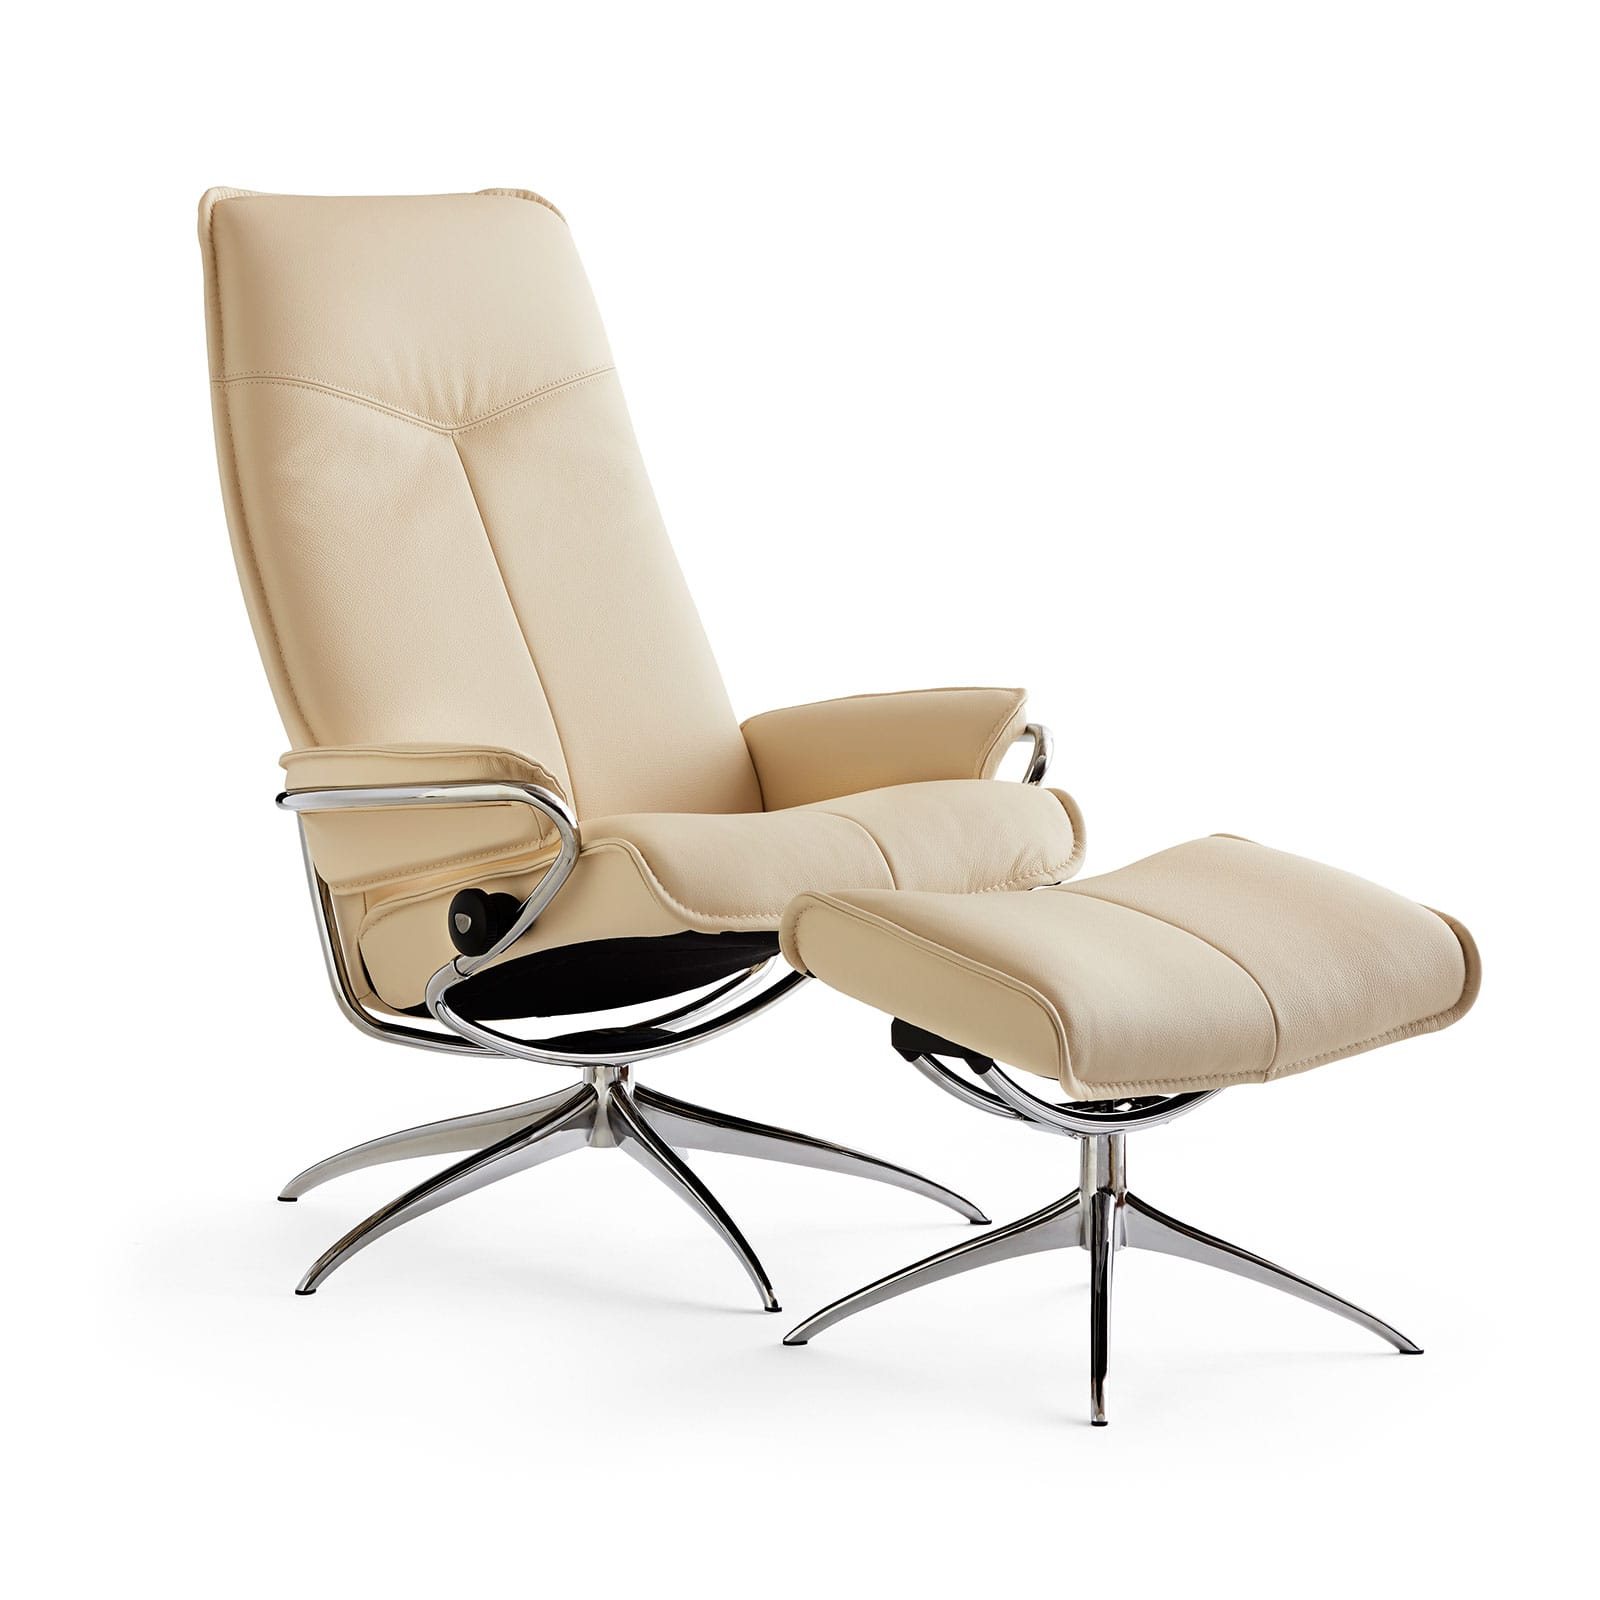 Stressless Sessel City High Back Stressless Sessel City High Back Vanilla Chrom Ohne Hocker